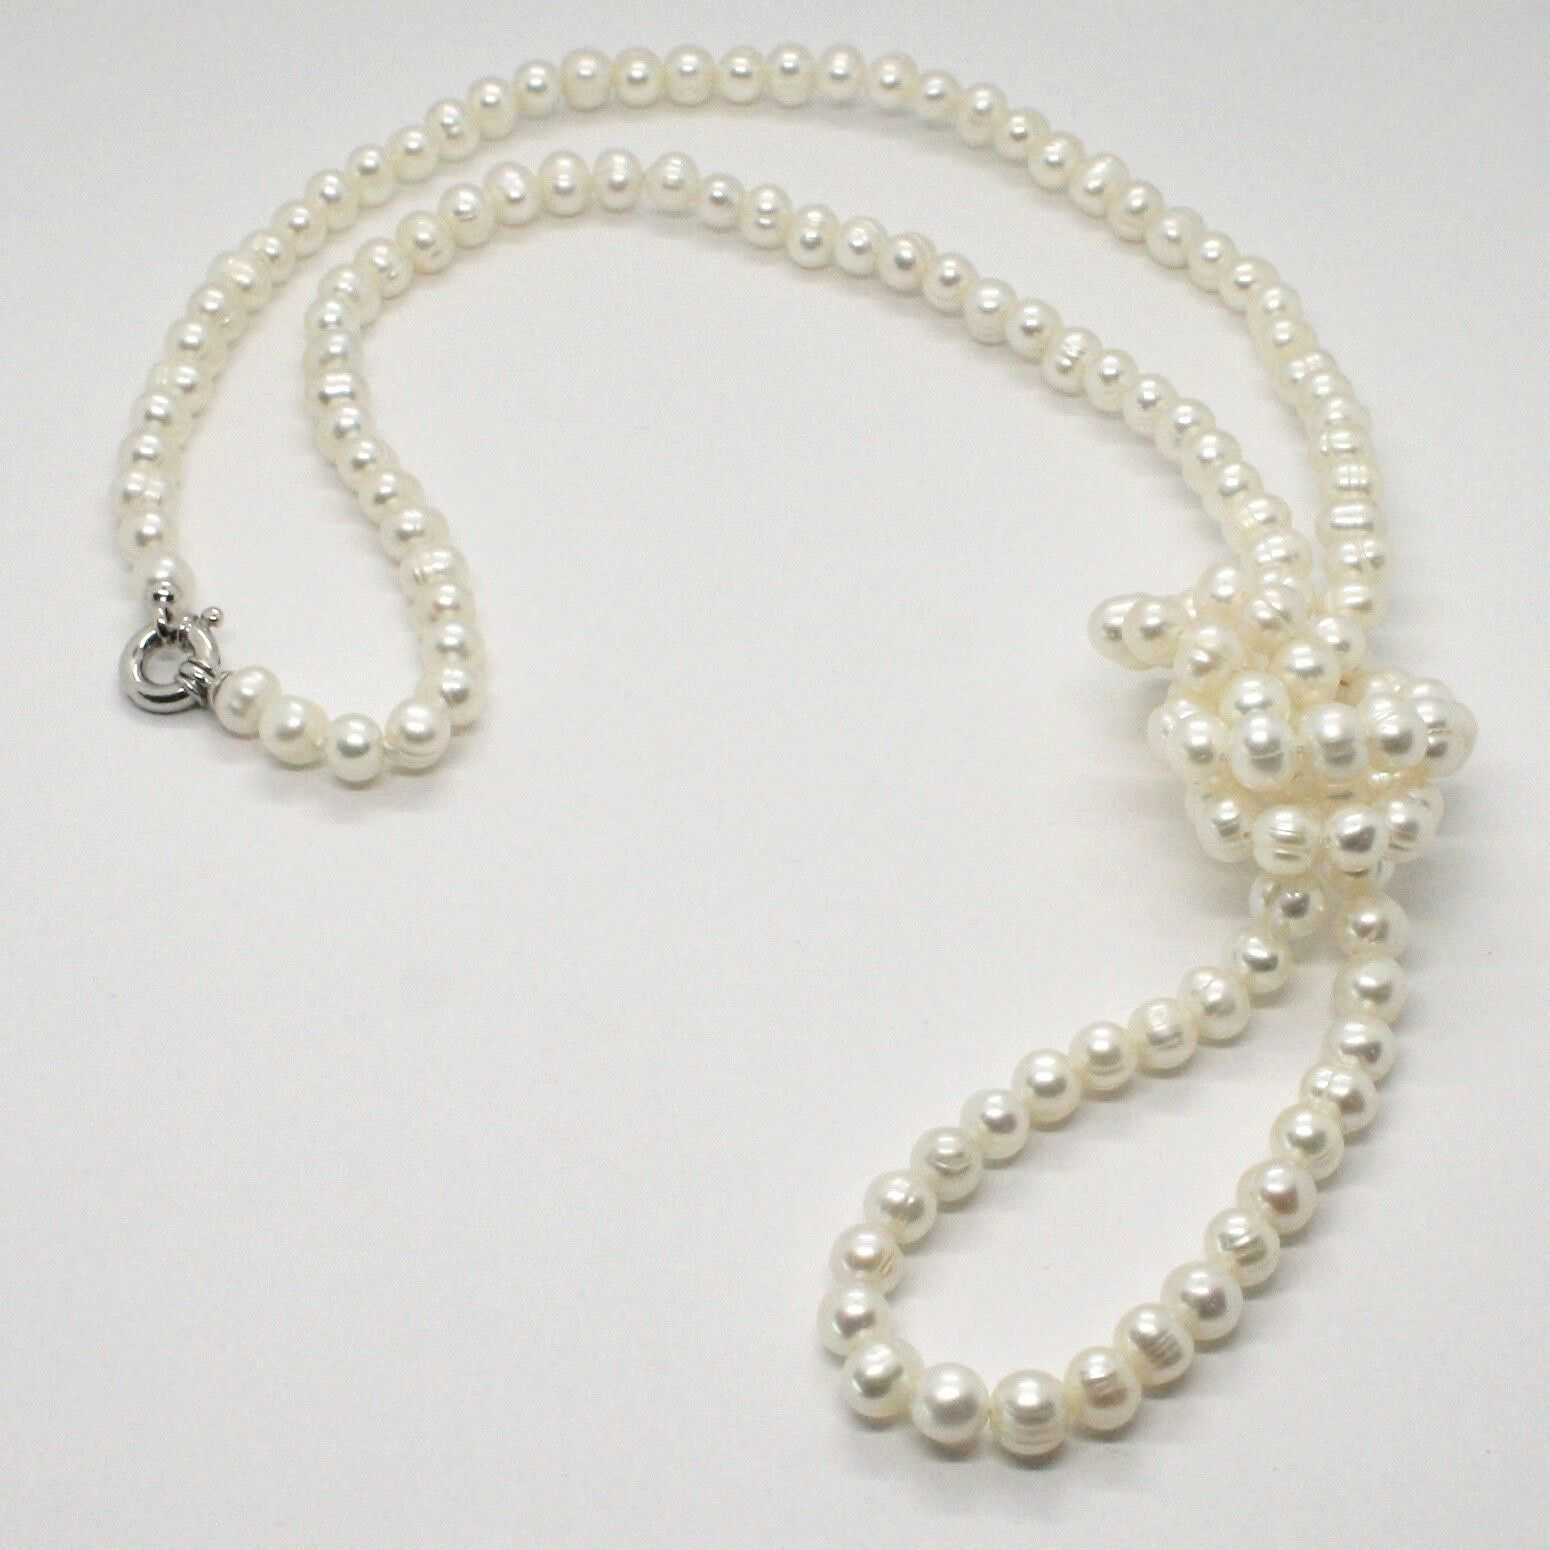 1 metre Long Necklace in 18k White Gold White Pearls freshwater Made in Italy